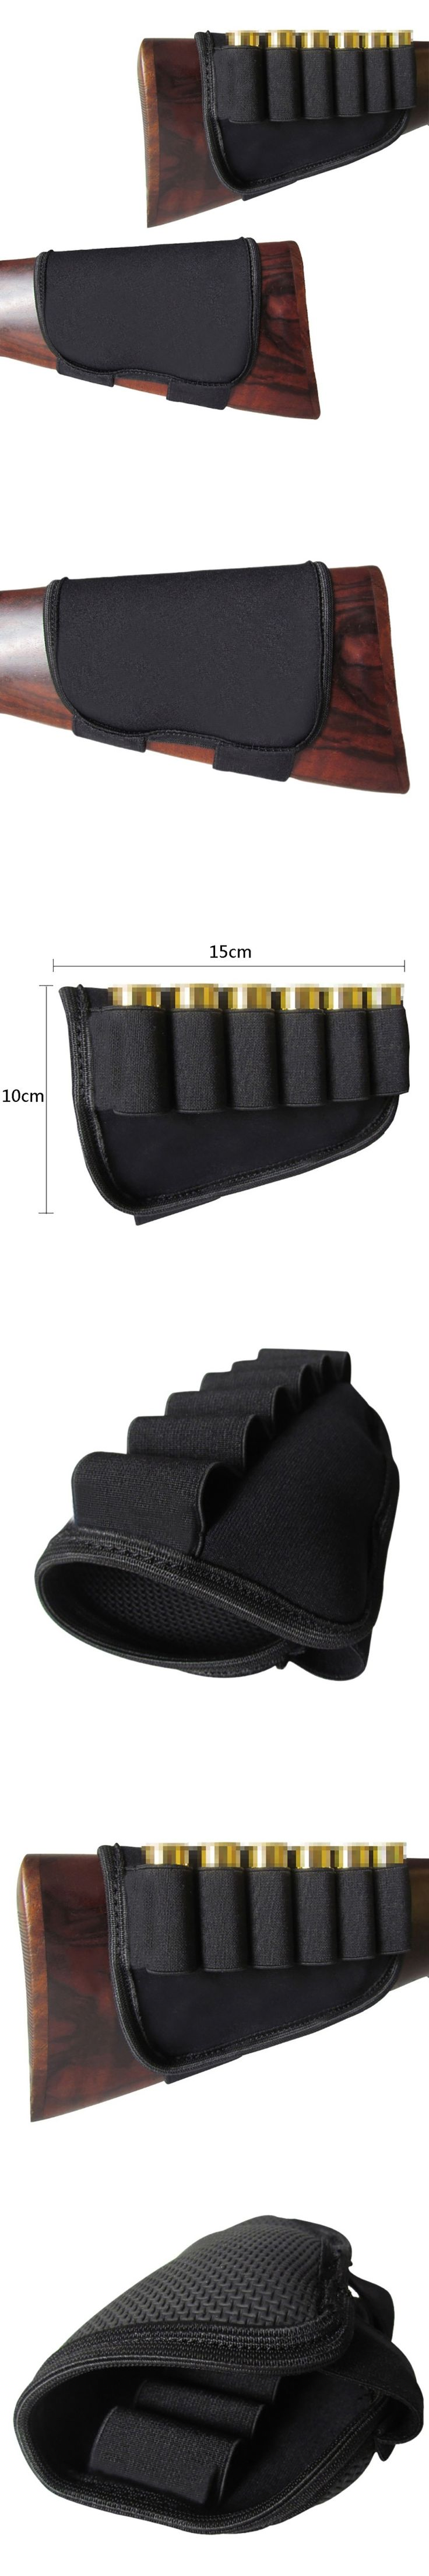 Outdoor Sports Tail Care Bag Pouch Bag for Rifles on Back Tactical Accessories Package